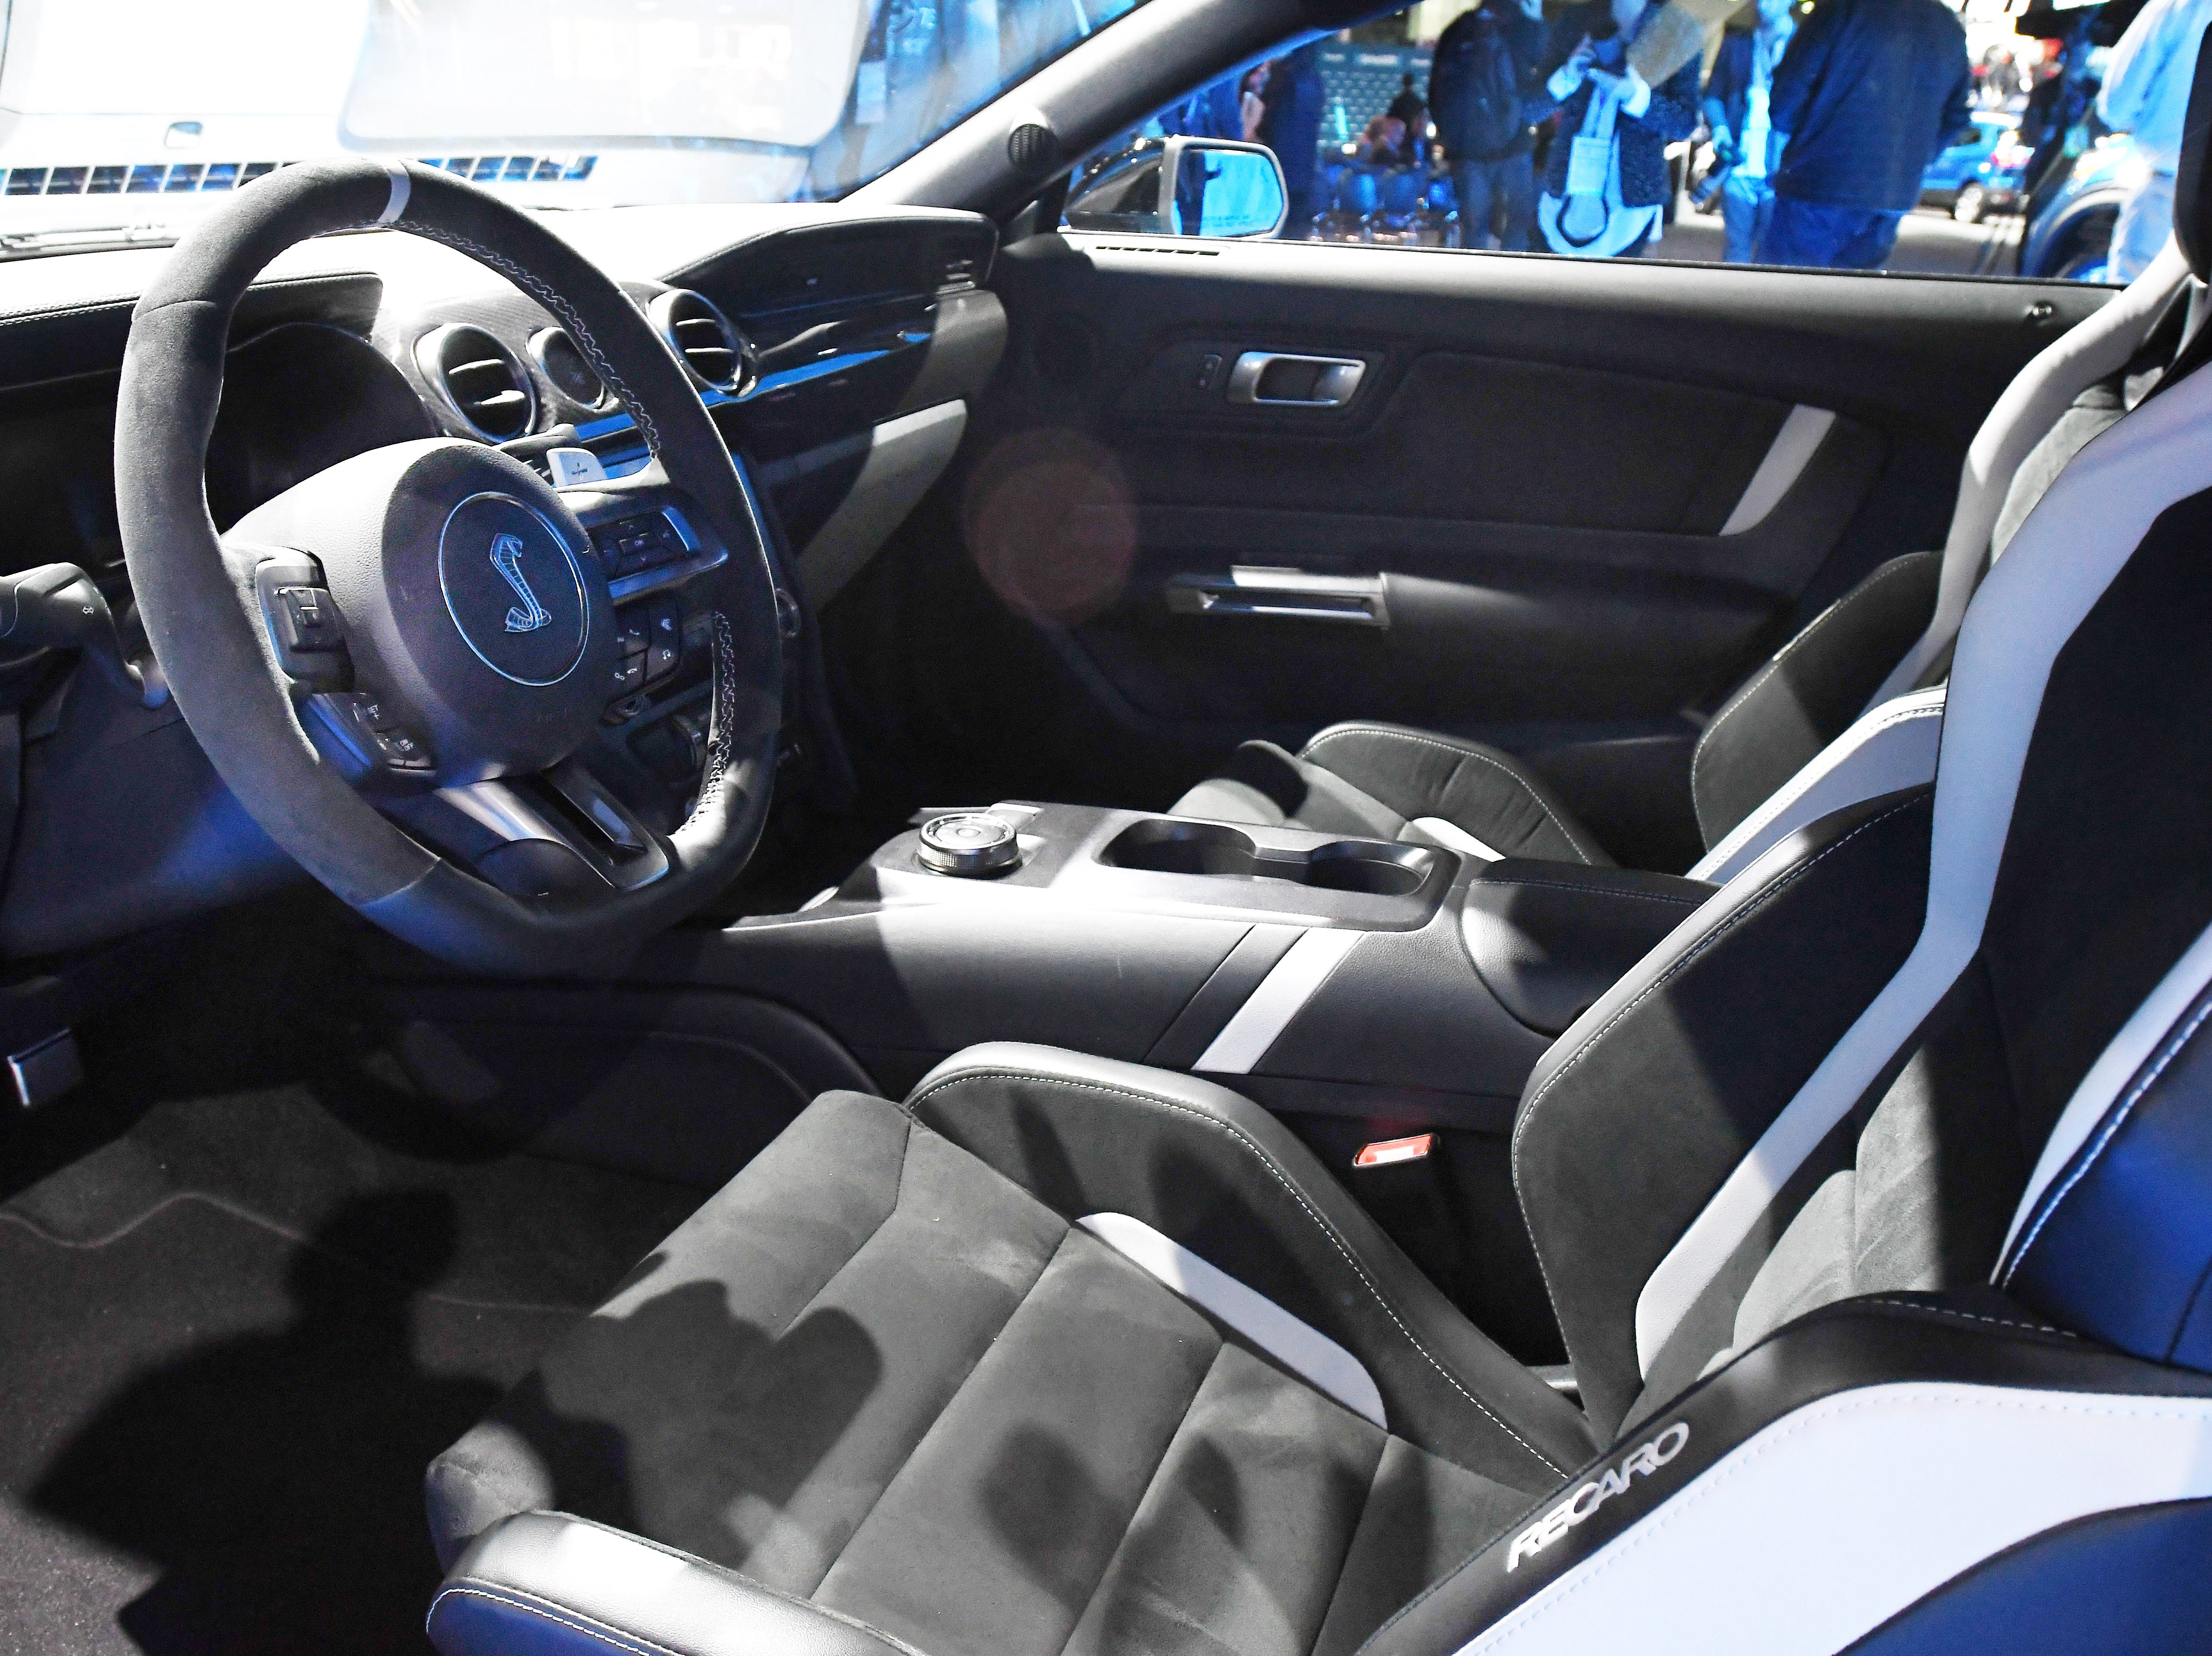 The Mustang Shelby GT500 features a plush leather interior.